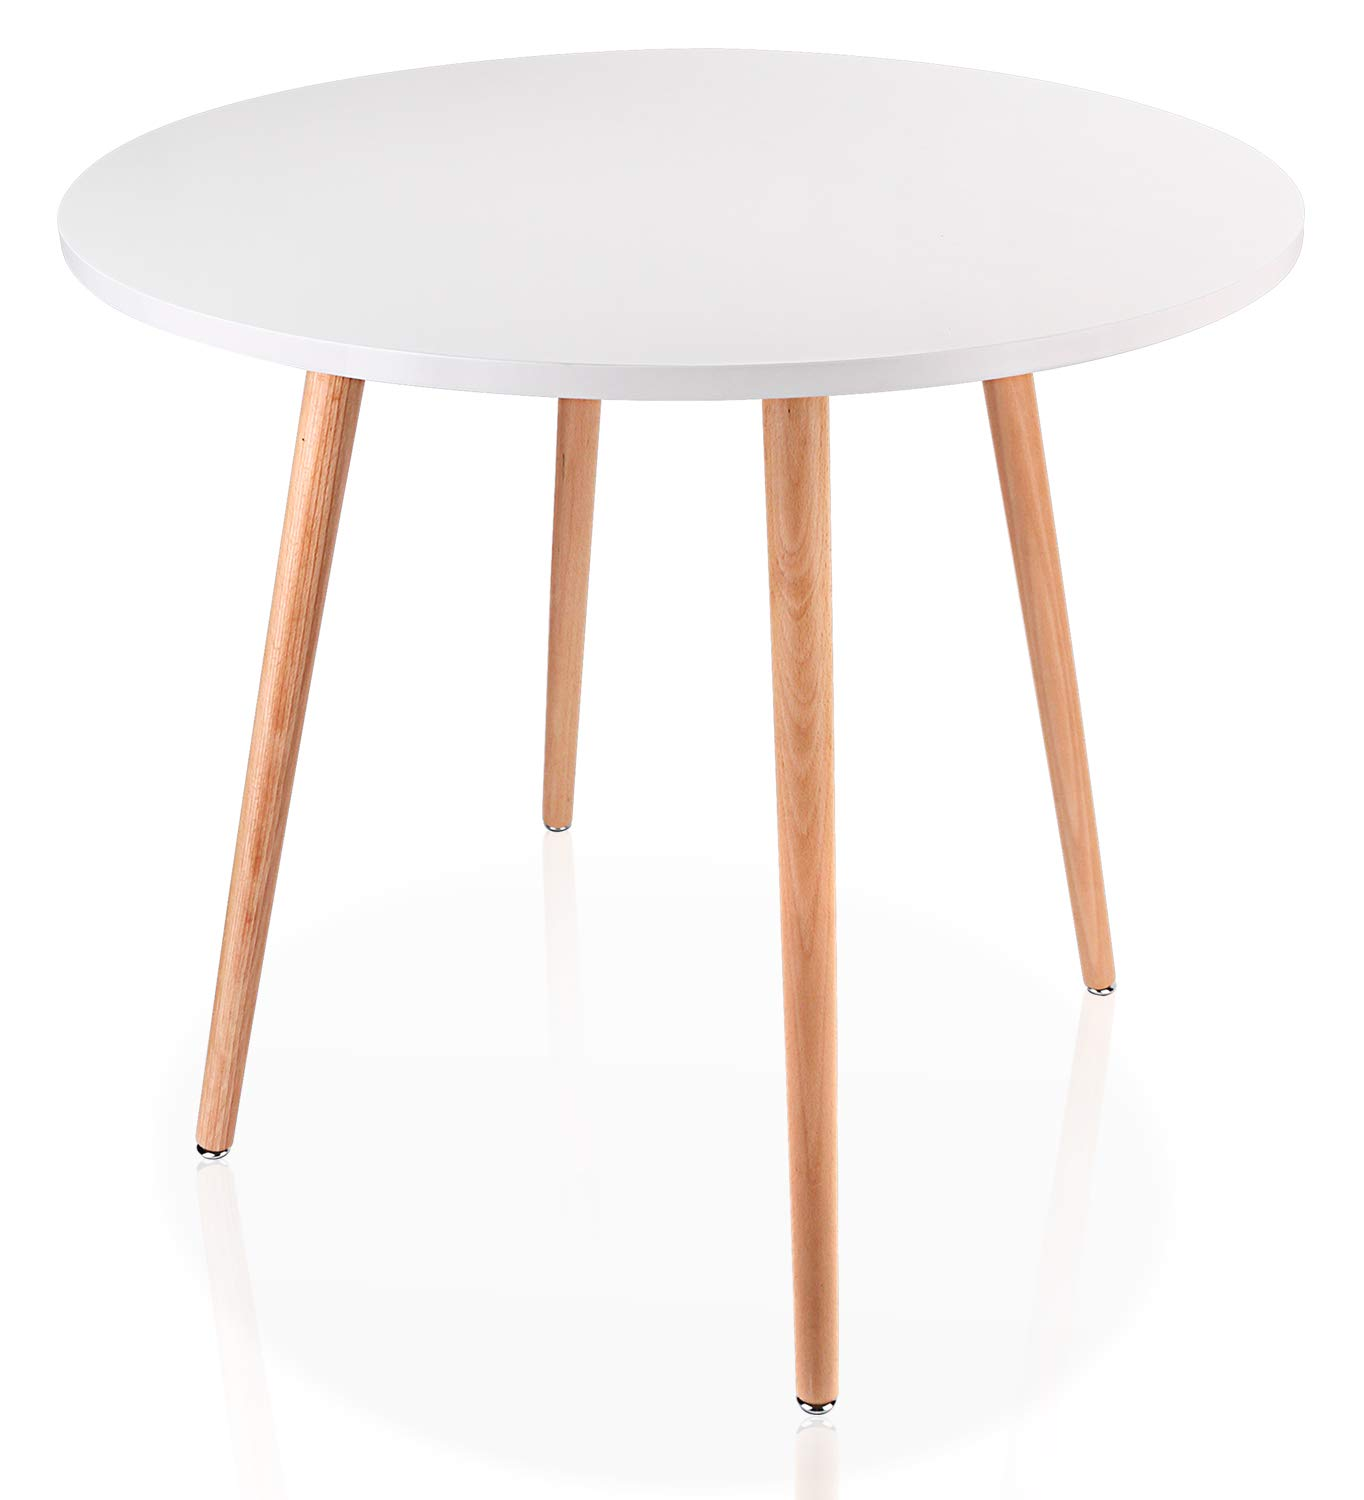 Leopard Coffee Table - White Round Top Kitchen Dining Table with 4 Wood Legs Leisure Wooden Tea Table Office Conference Pedestal Desk- 31.5'' (Diameter)